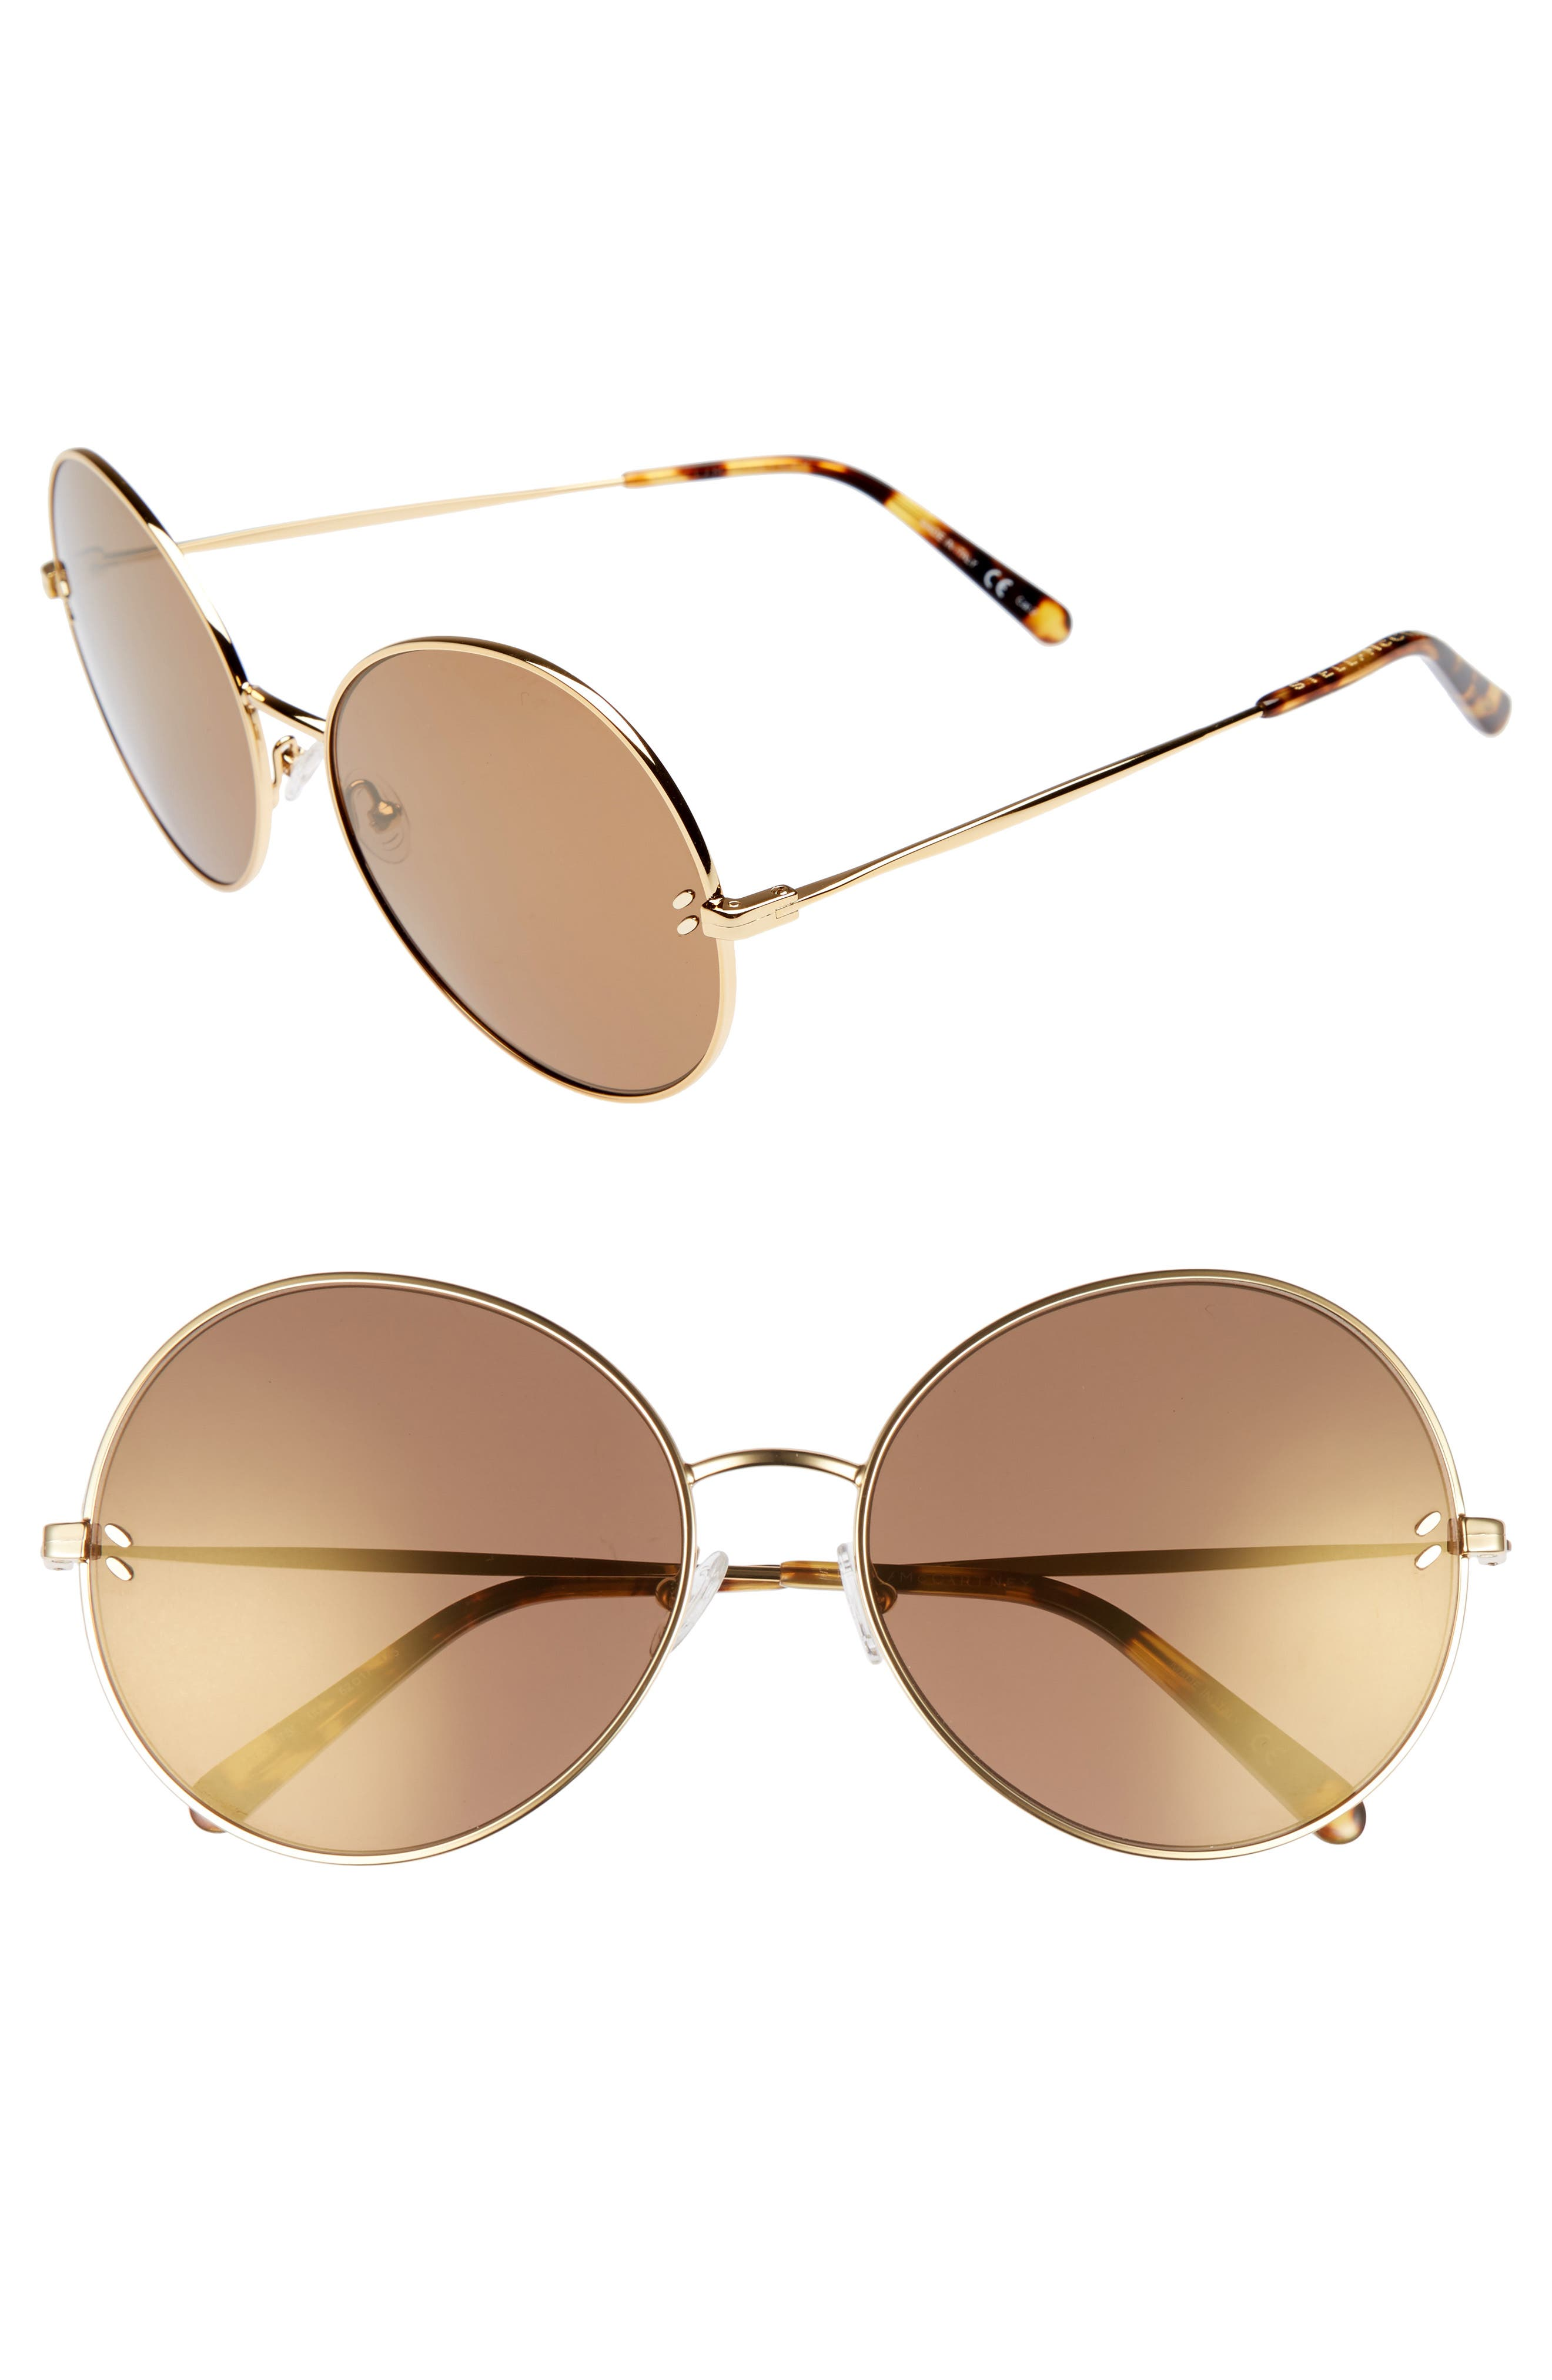 62mm Round Sunglasses,                         Main,                         color, Gold/ Brown